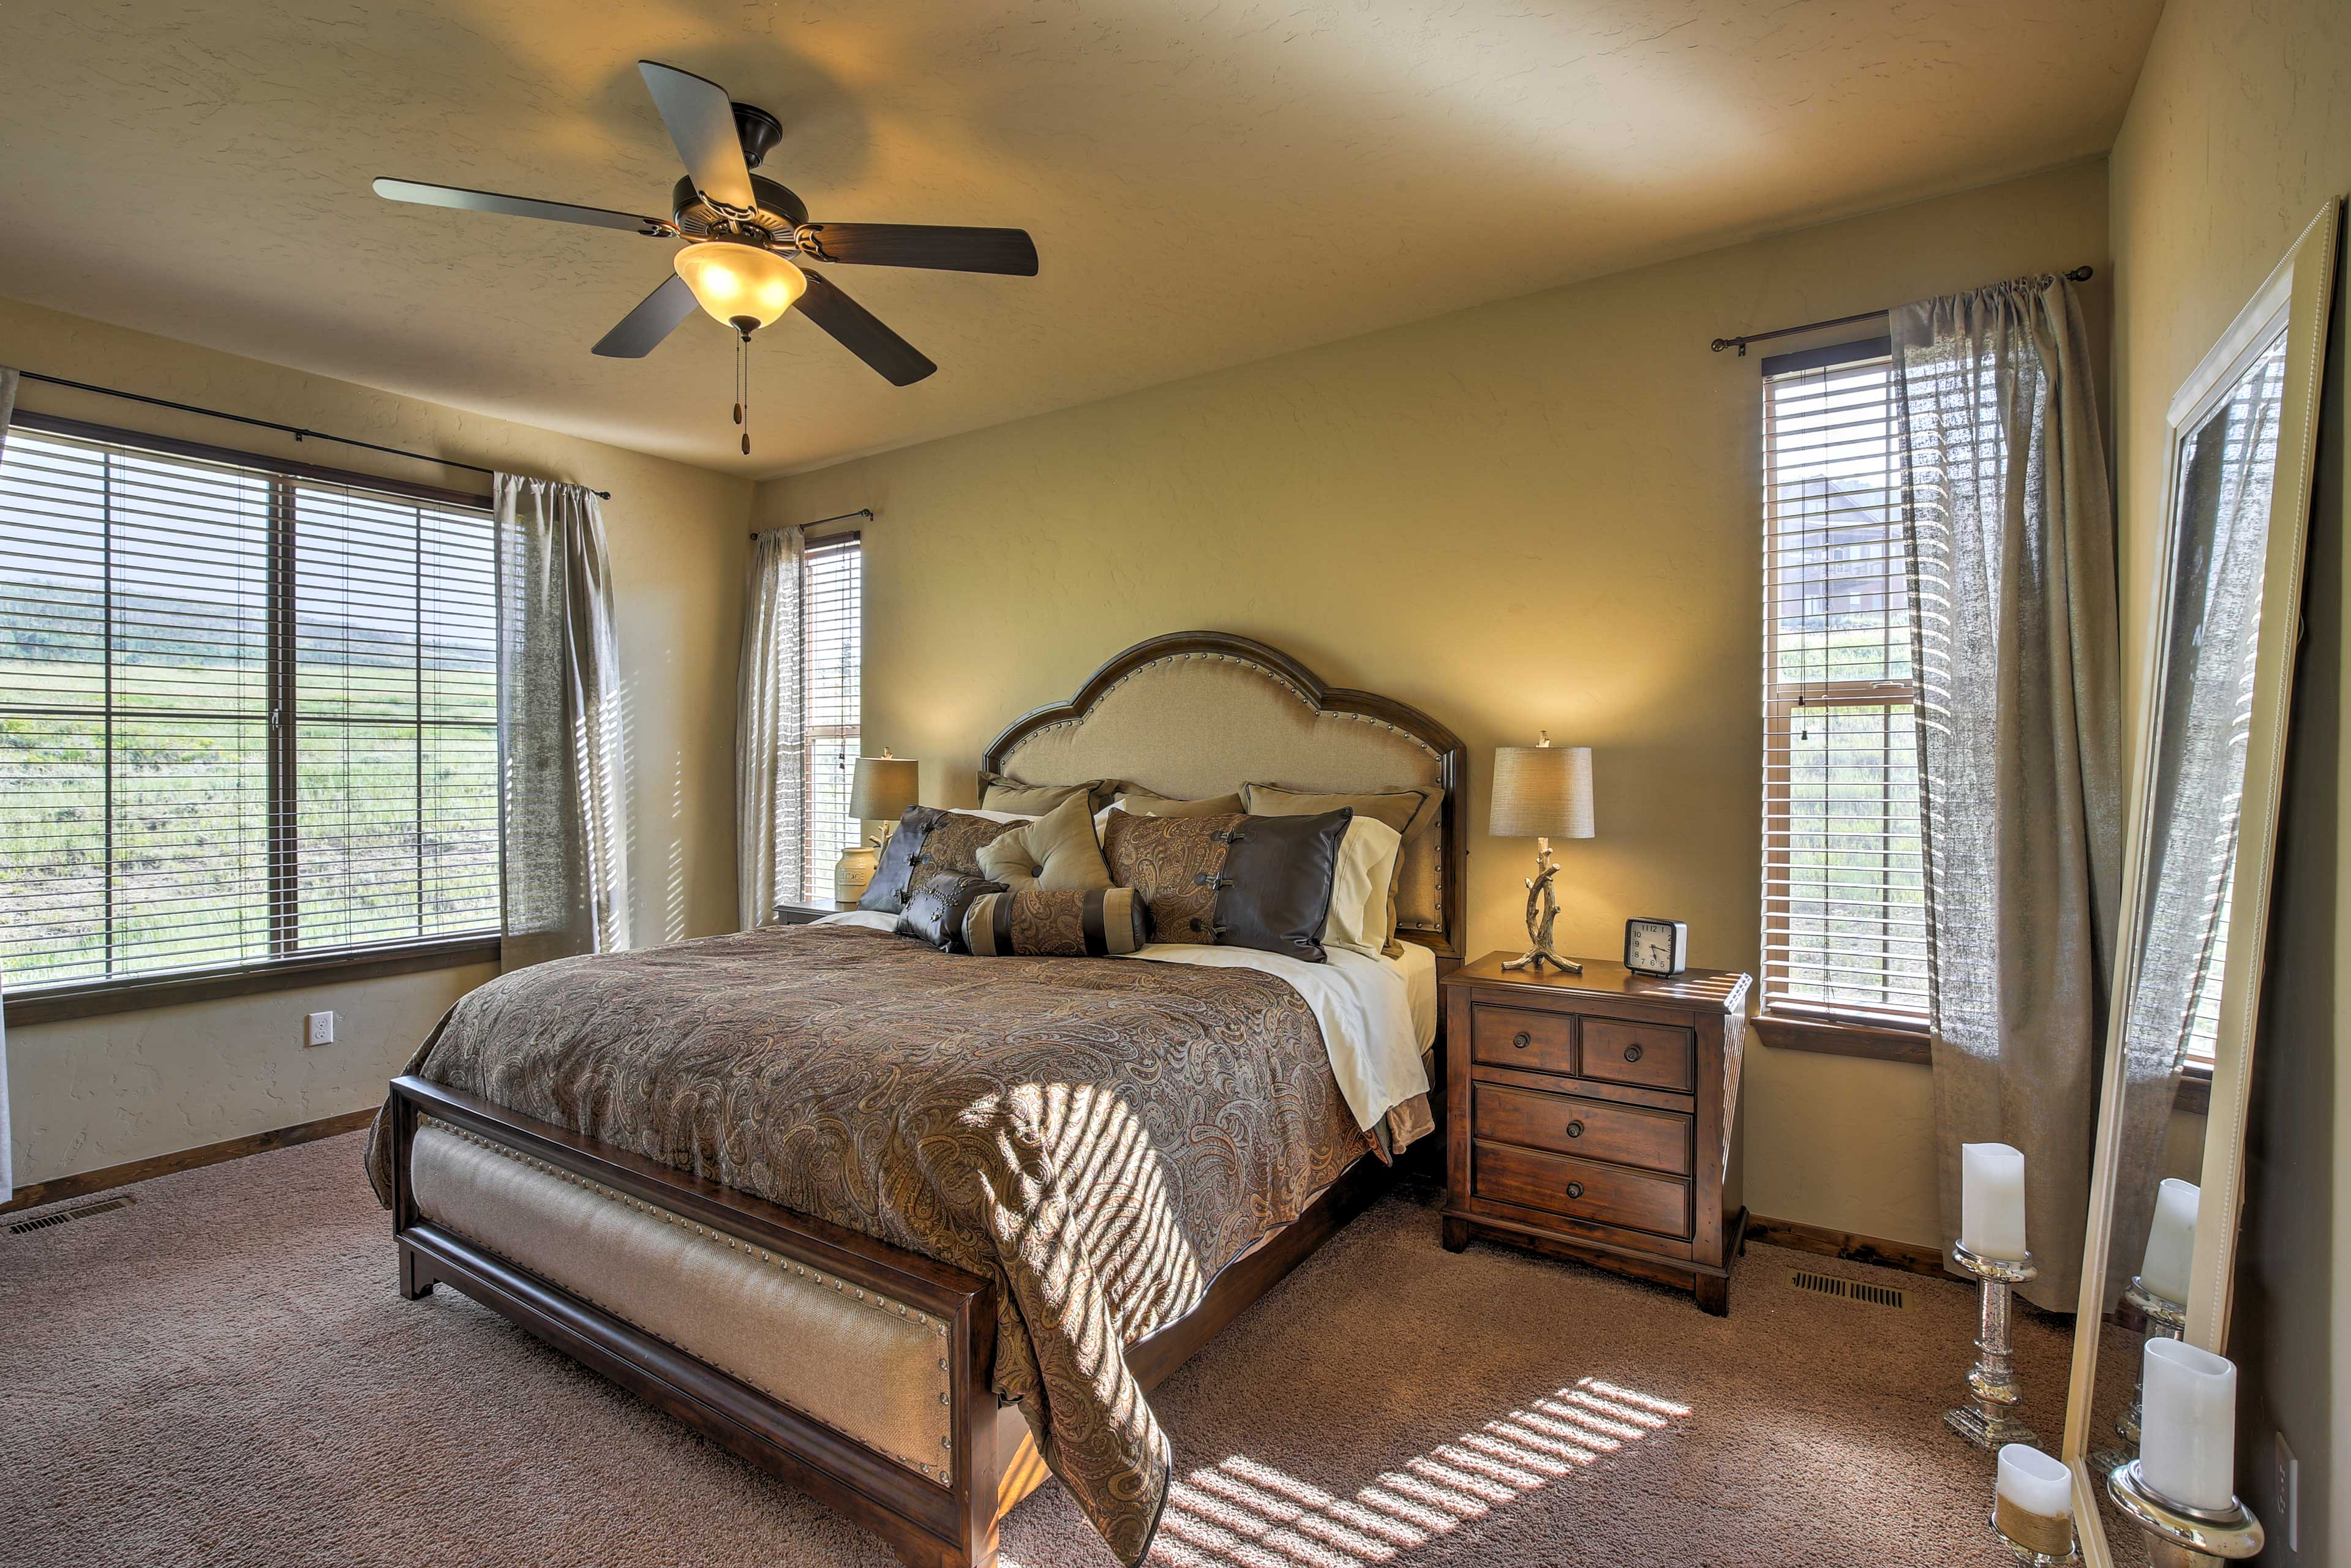 This master bedroom has a King-sized bed.